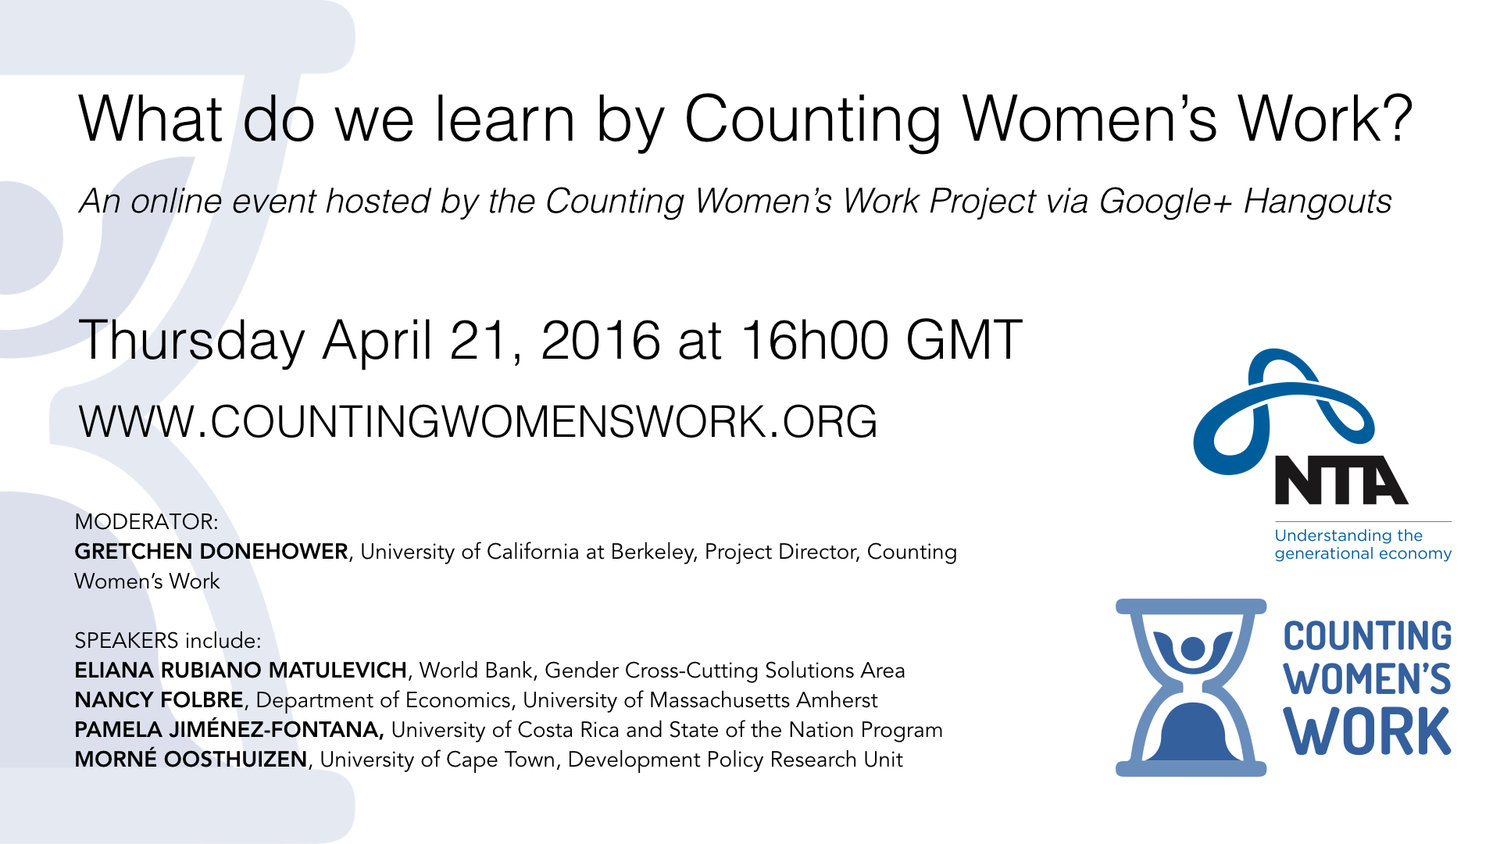 Google Hangout: What do we learn by Counting Women's Work